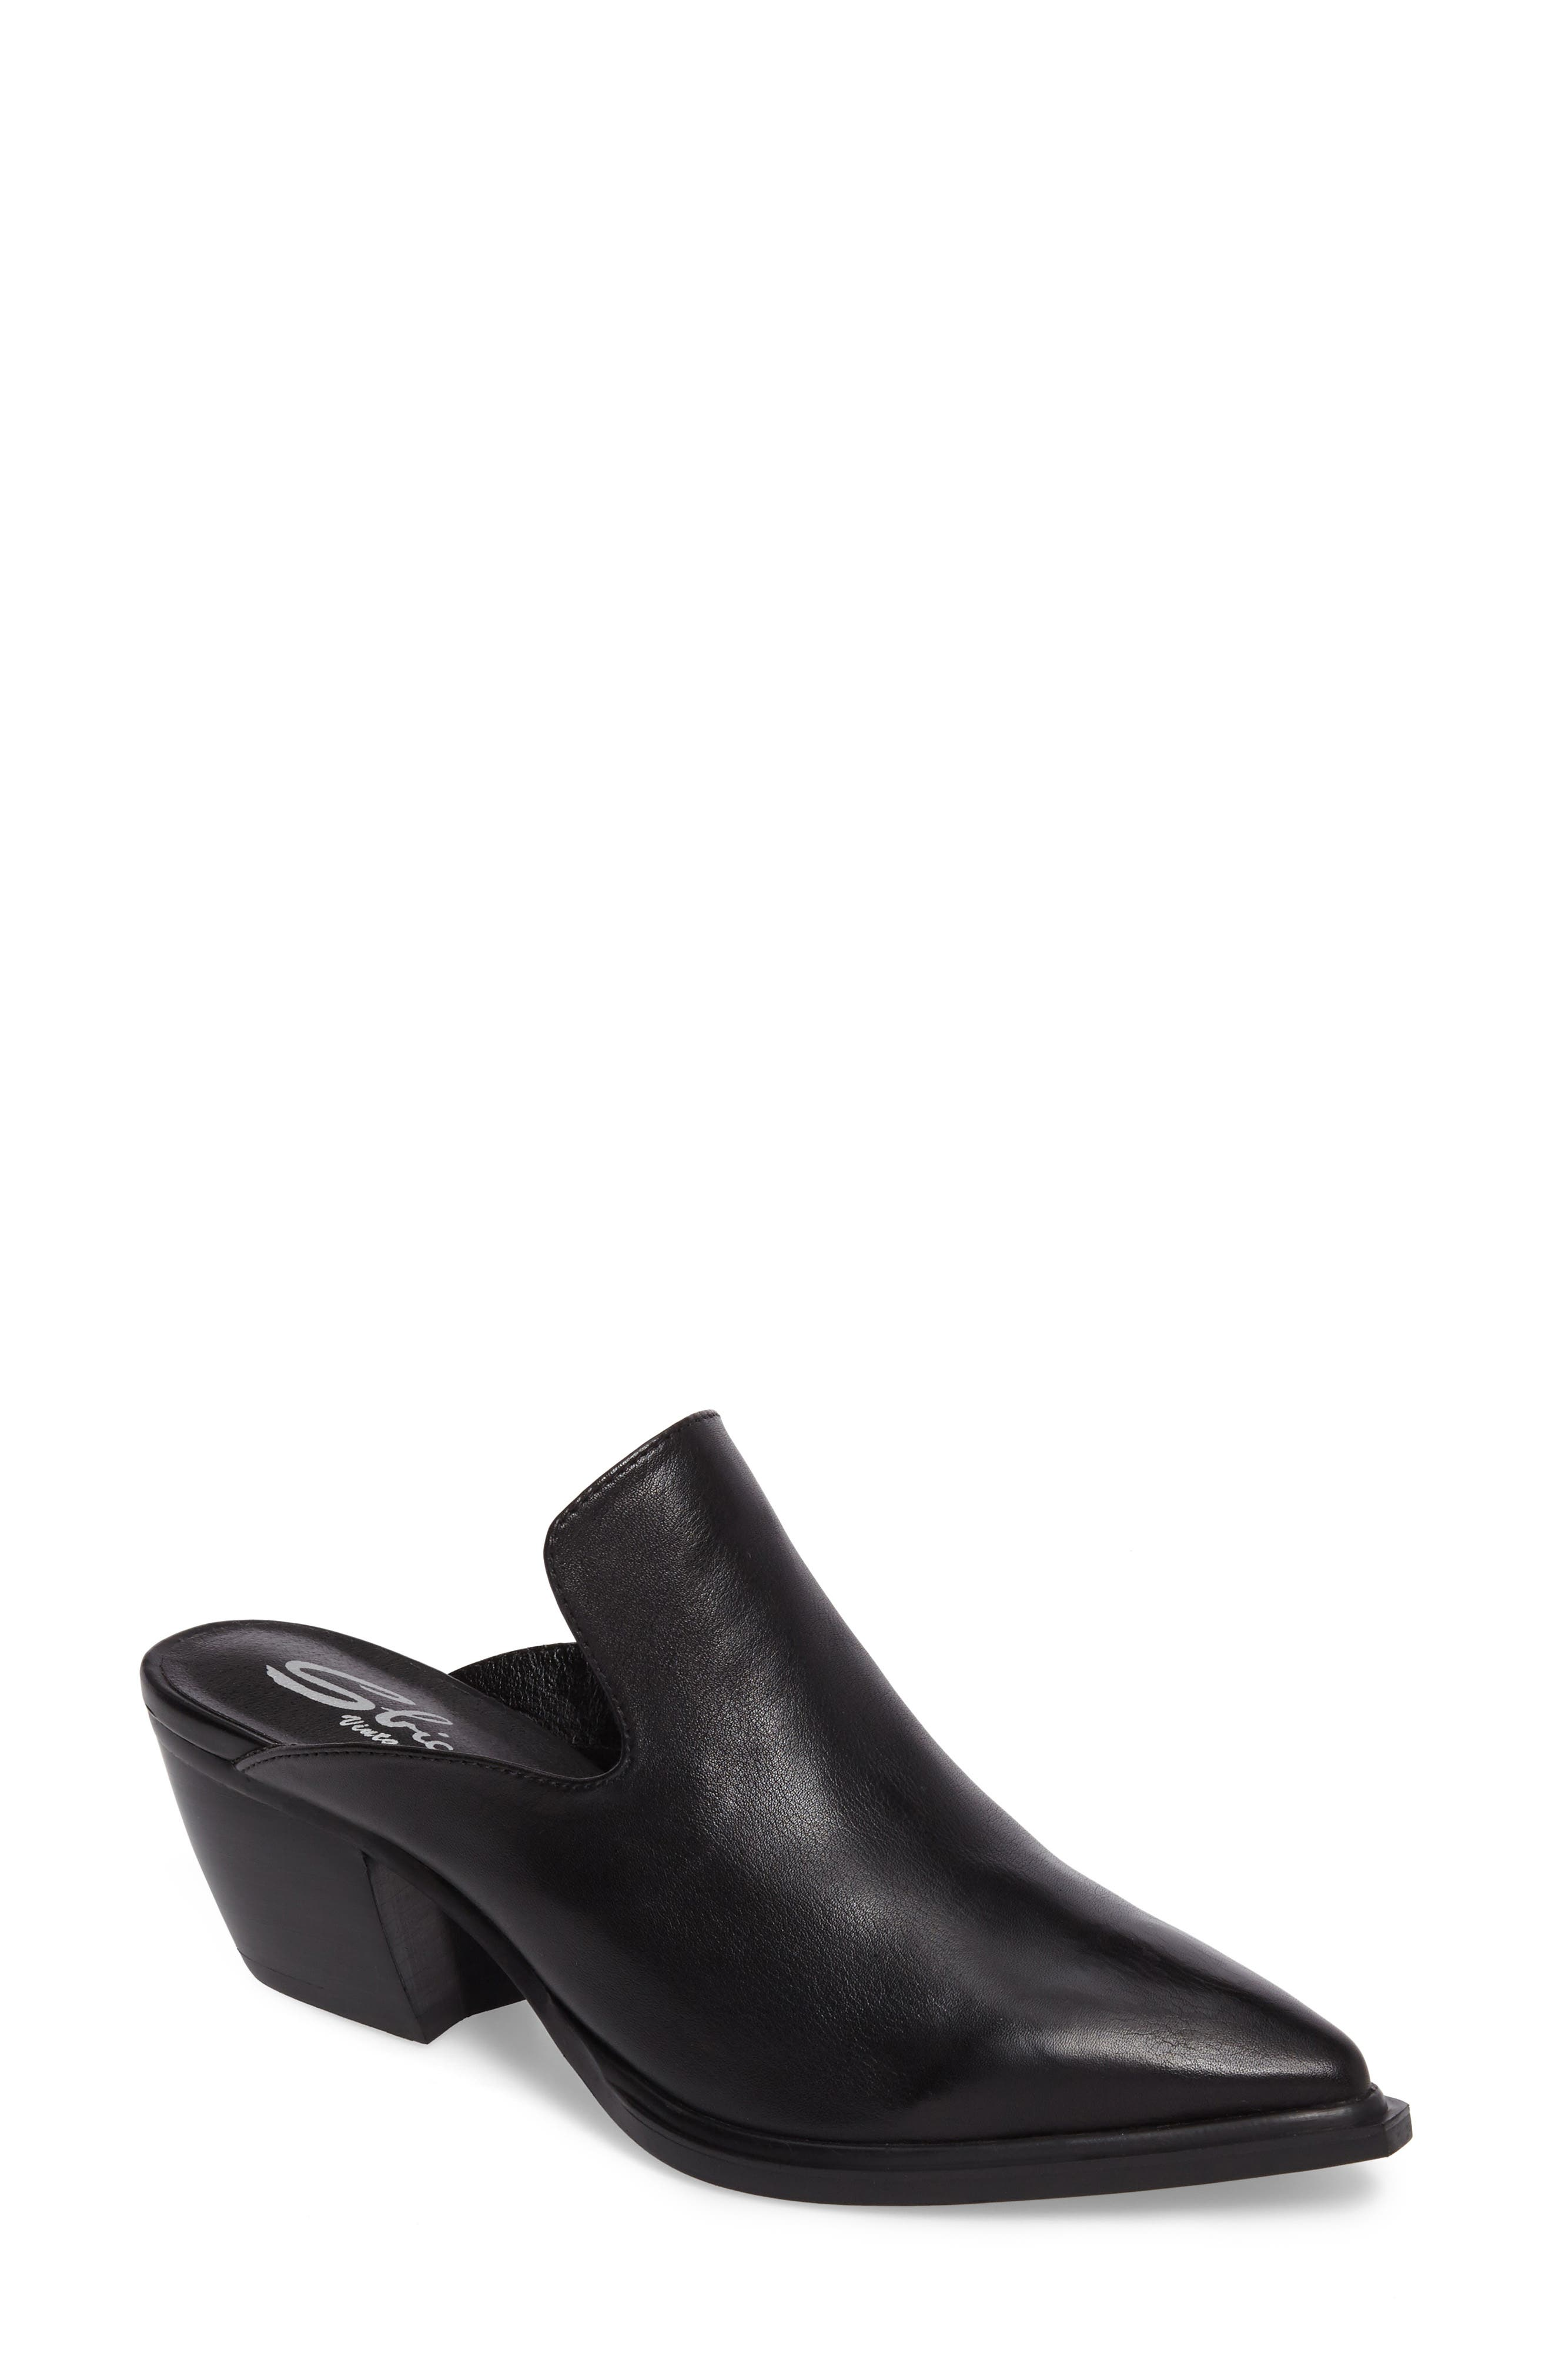 Mulah Pointy Toe Mule,                         Main,                         color, Black Leather